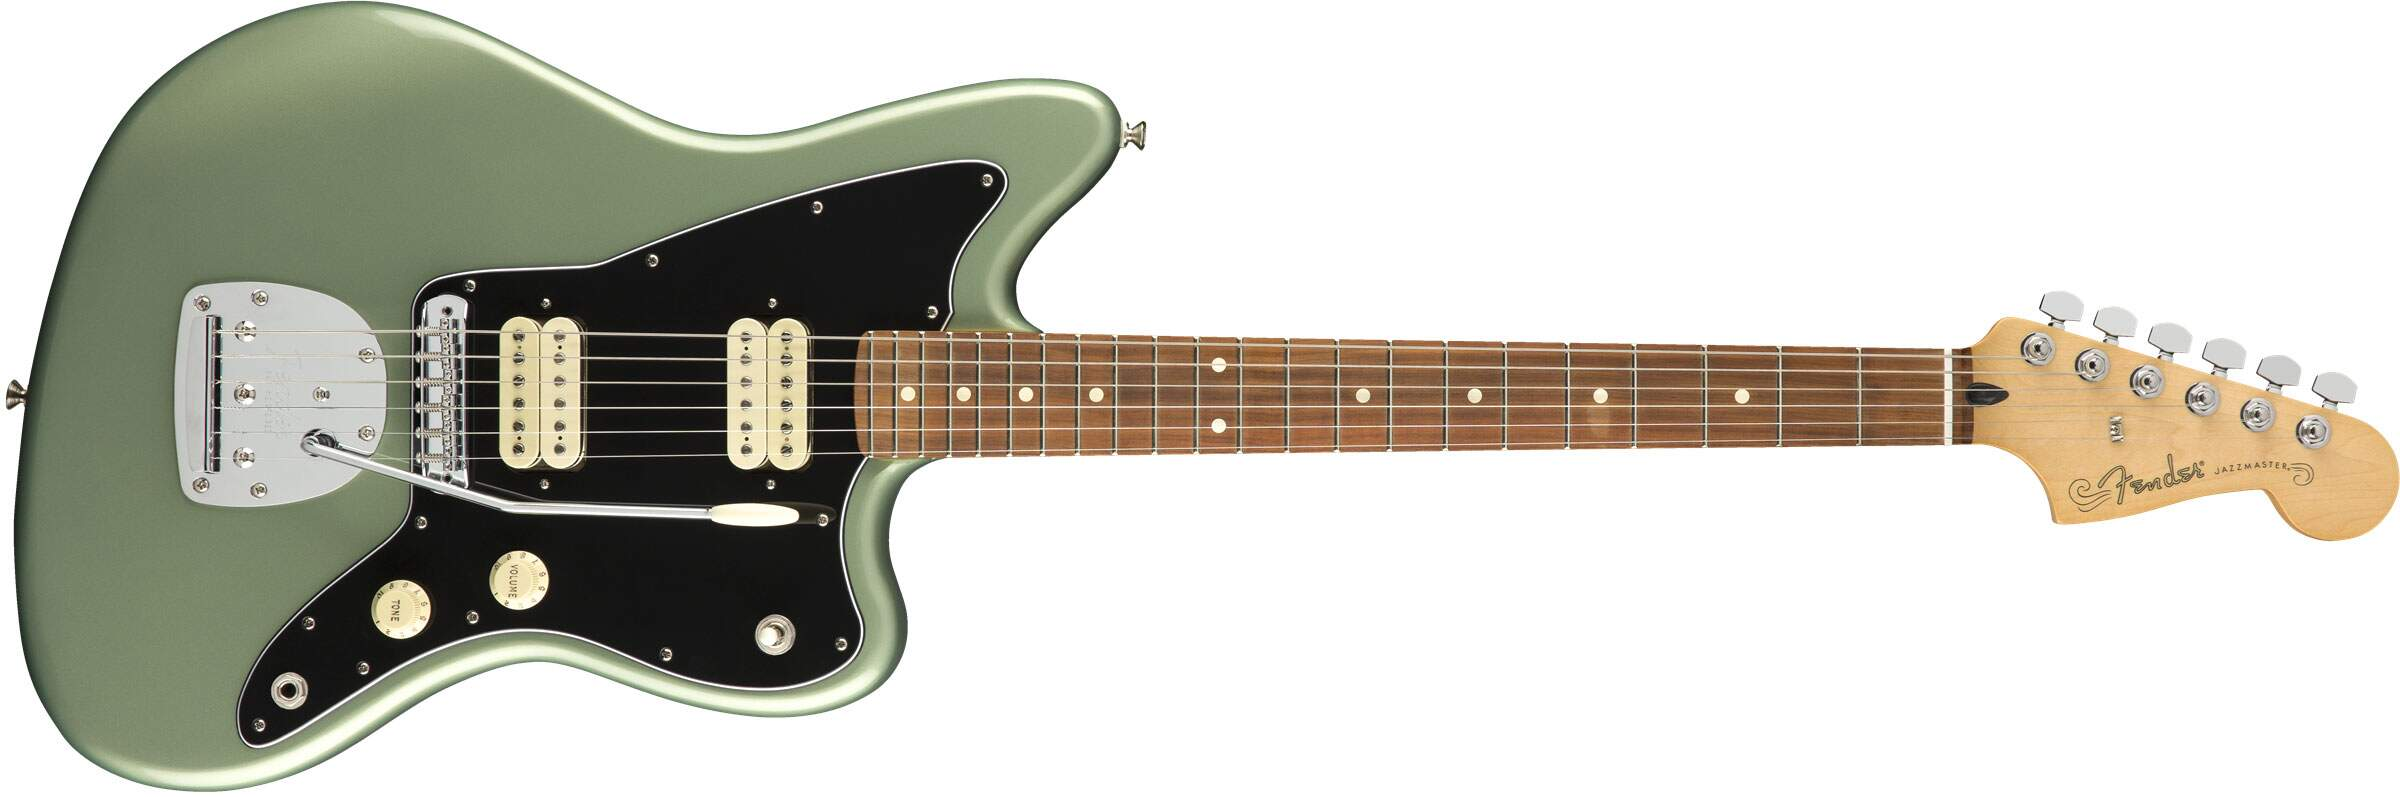 GUITARRA FENDER 014 6903 PLAYER JAZZMASTER 519 SAGE GREEN